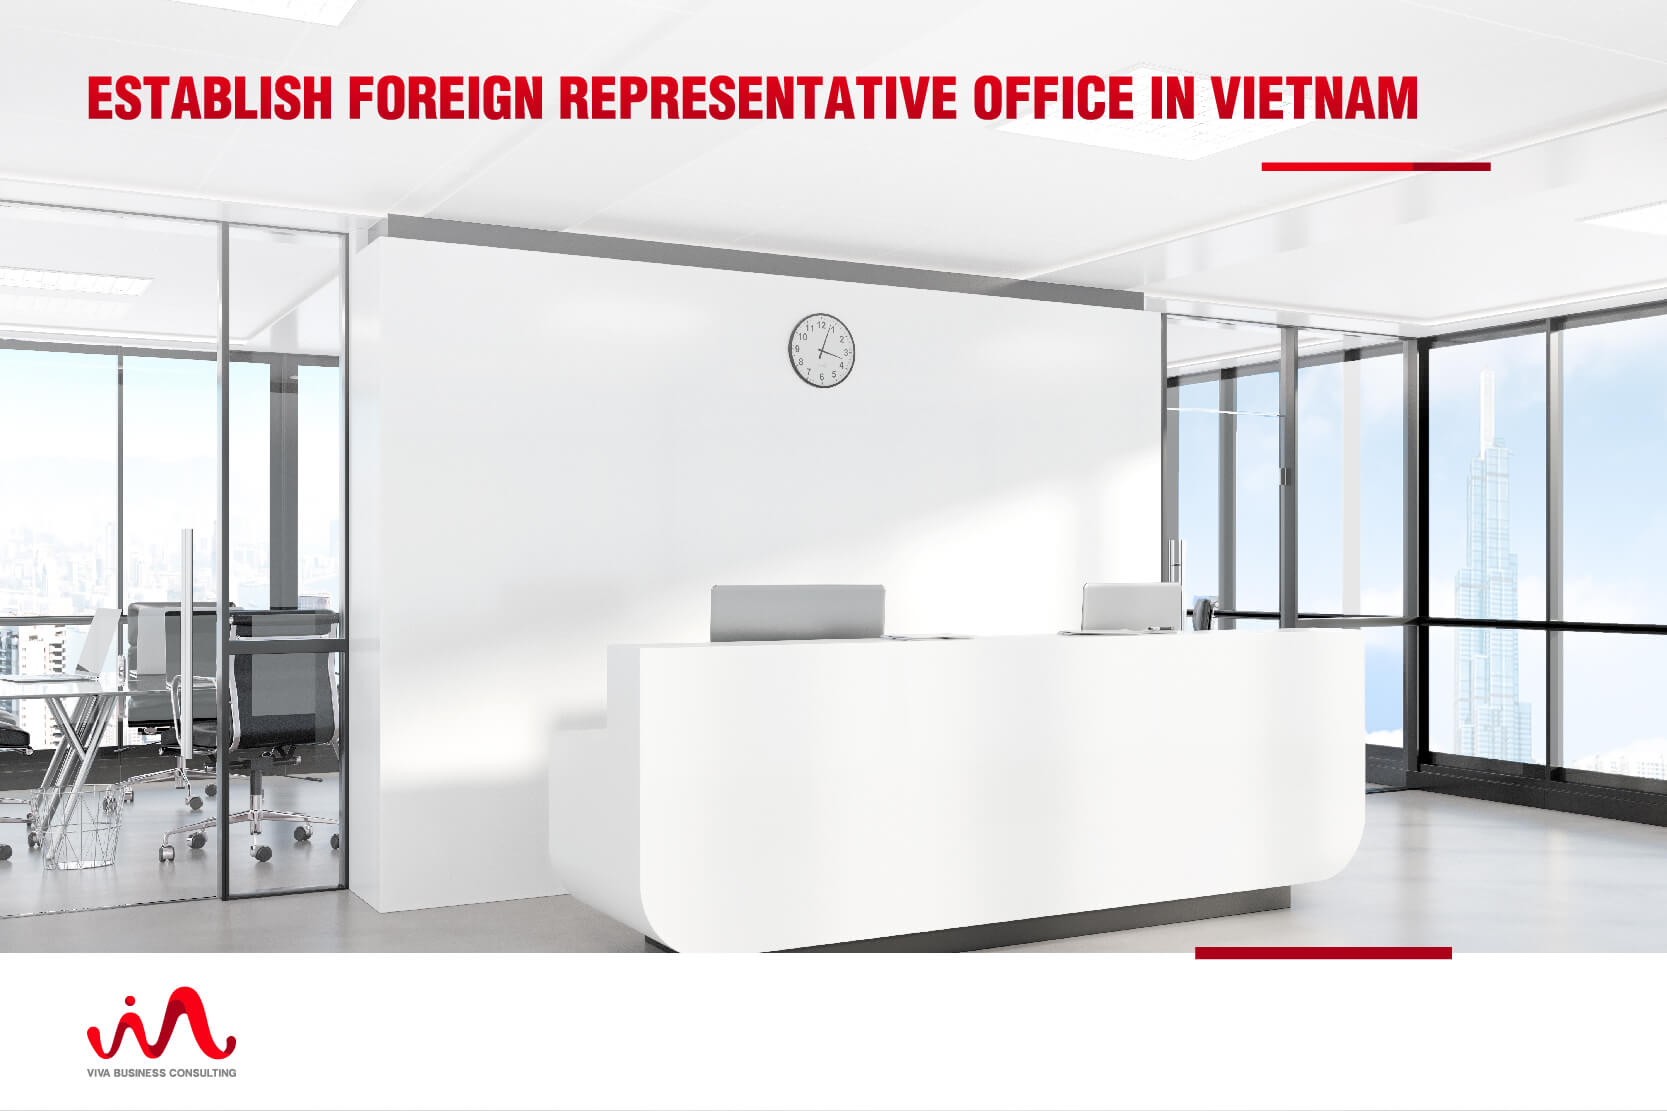 Establish Foreign Representative Office in Vietnam